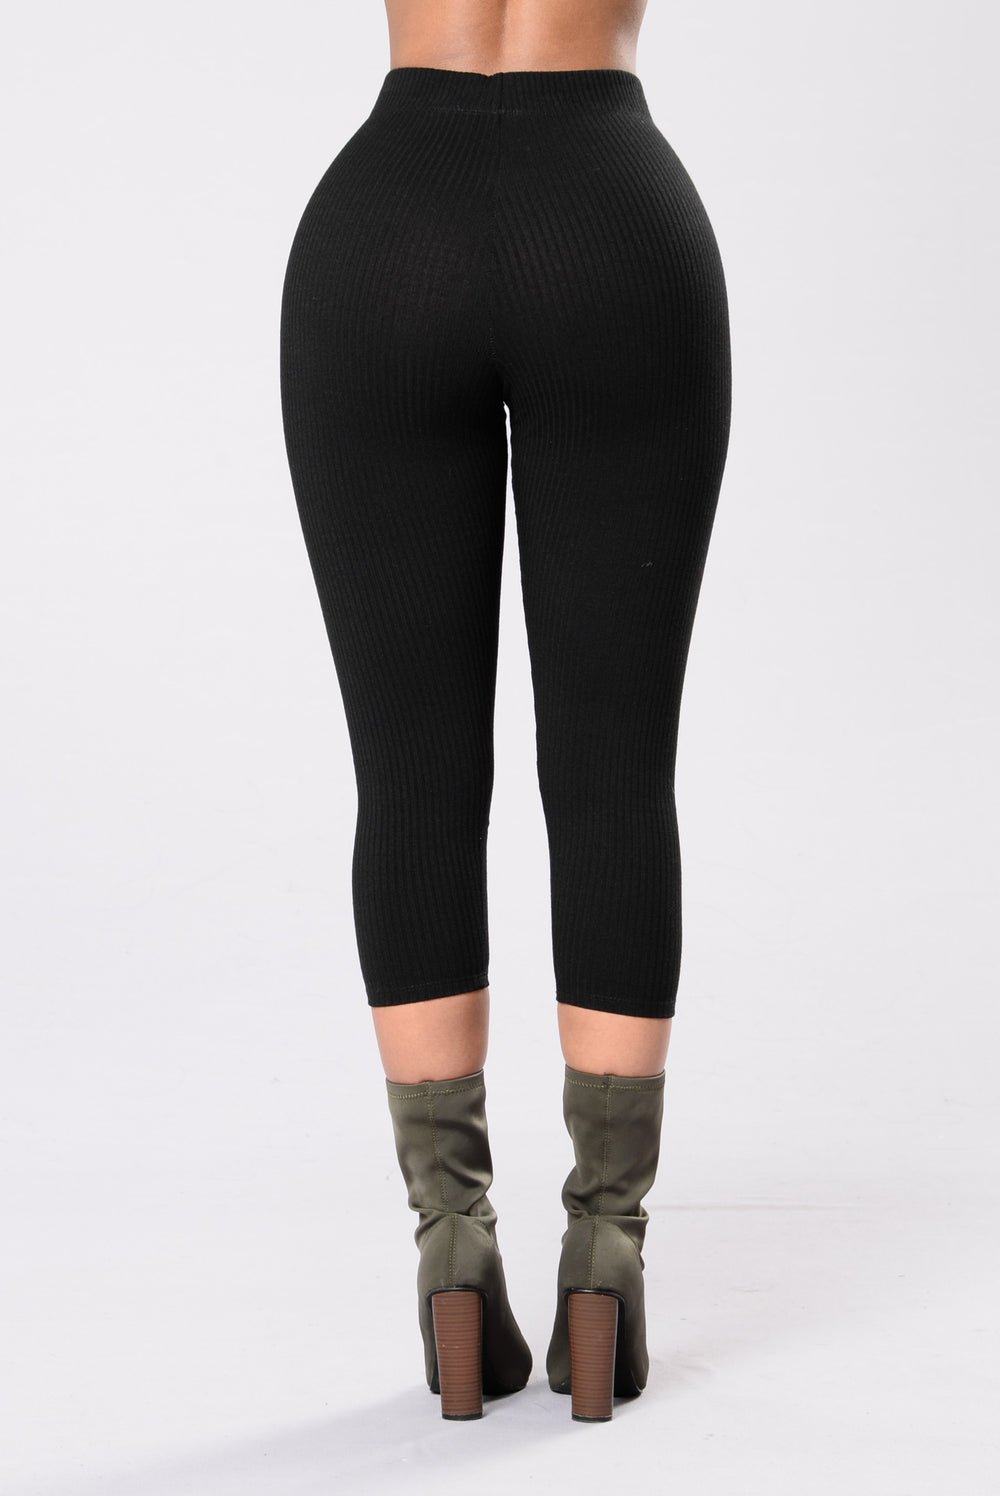 Run This City Leggings - Black